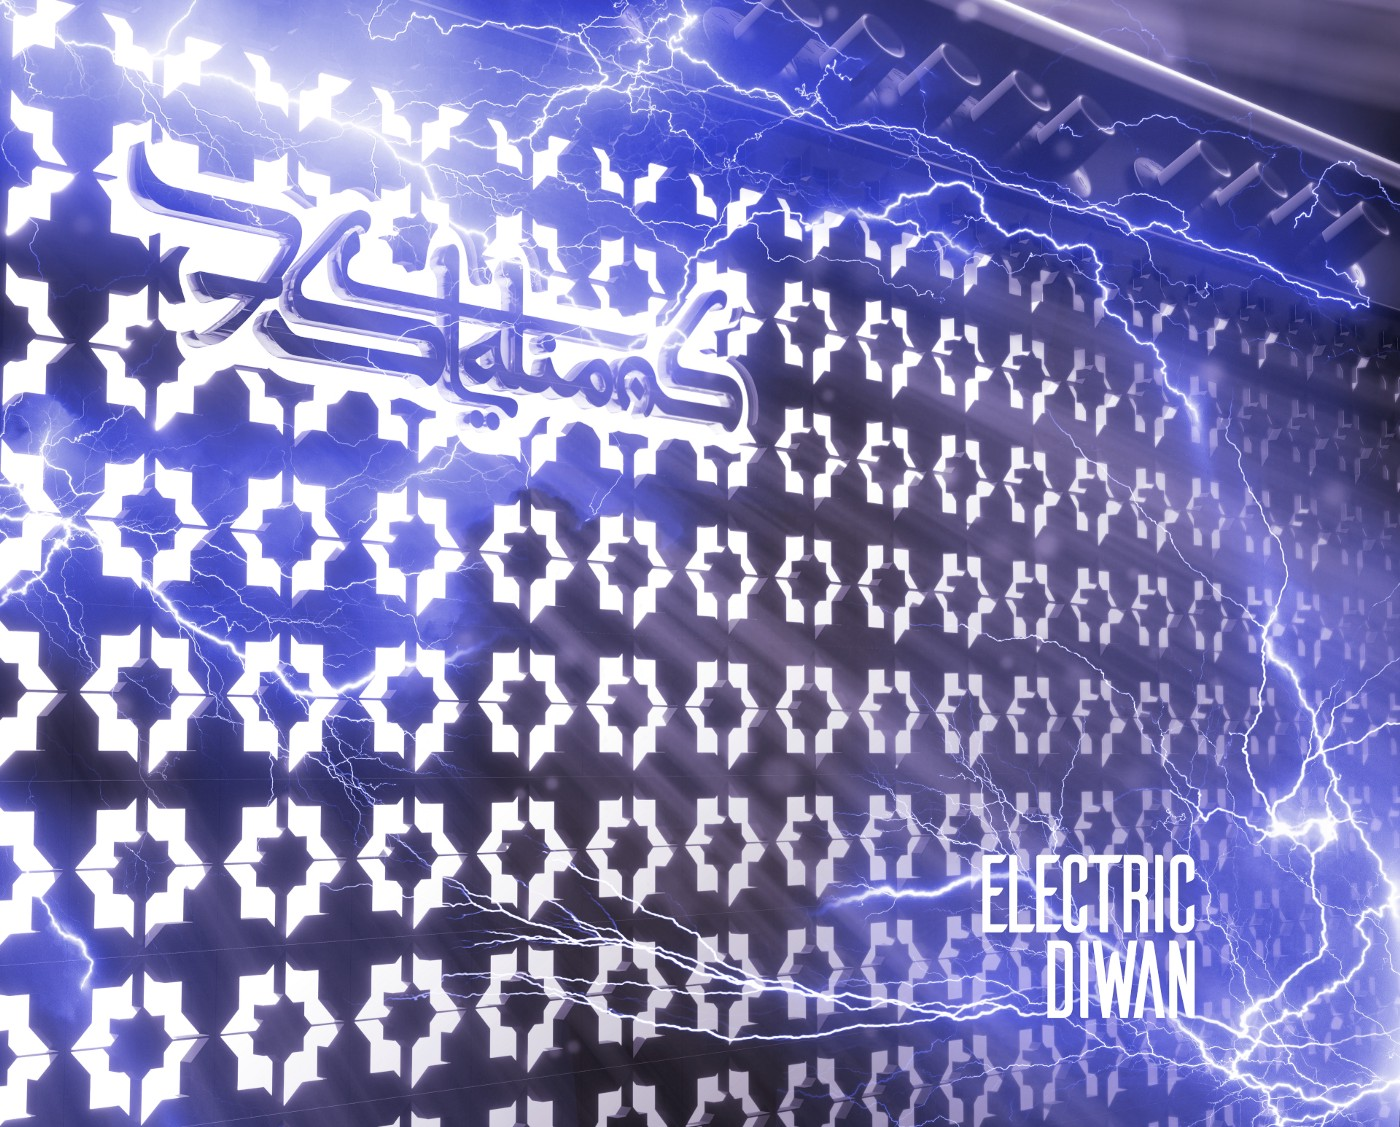 Electrified Moroccan Islamic Songs — The Music of 7Stations and the